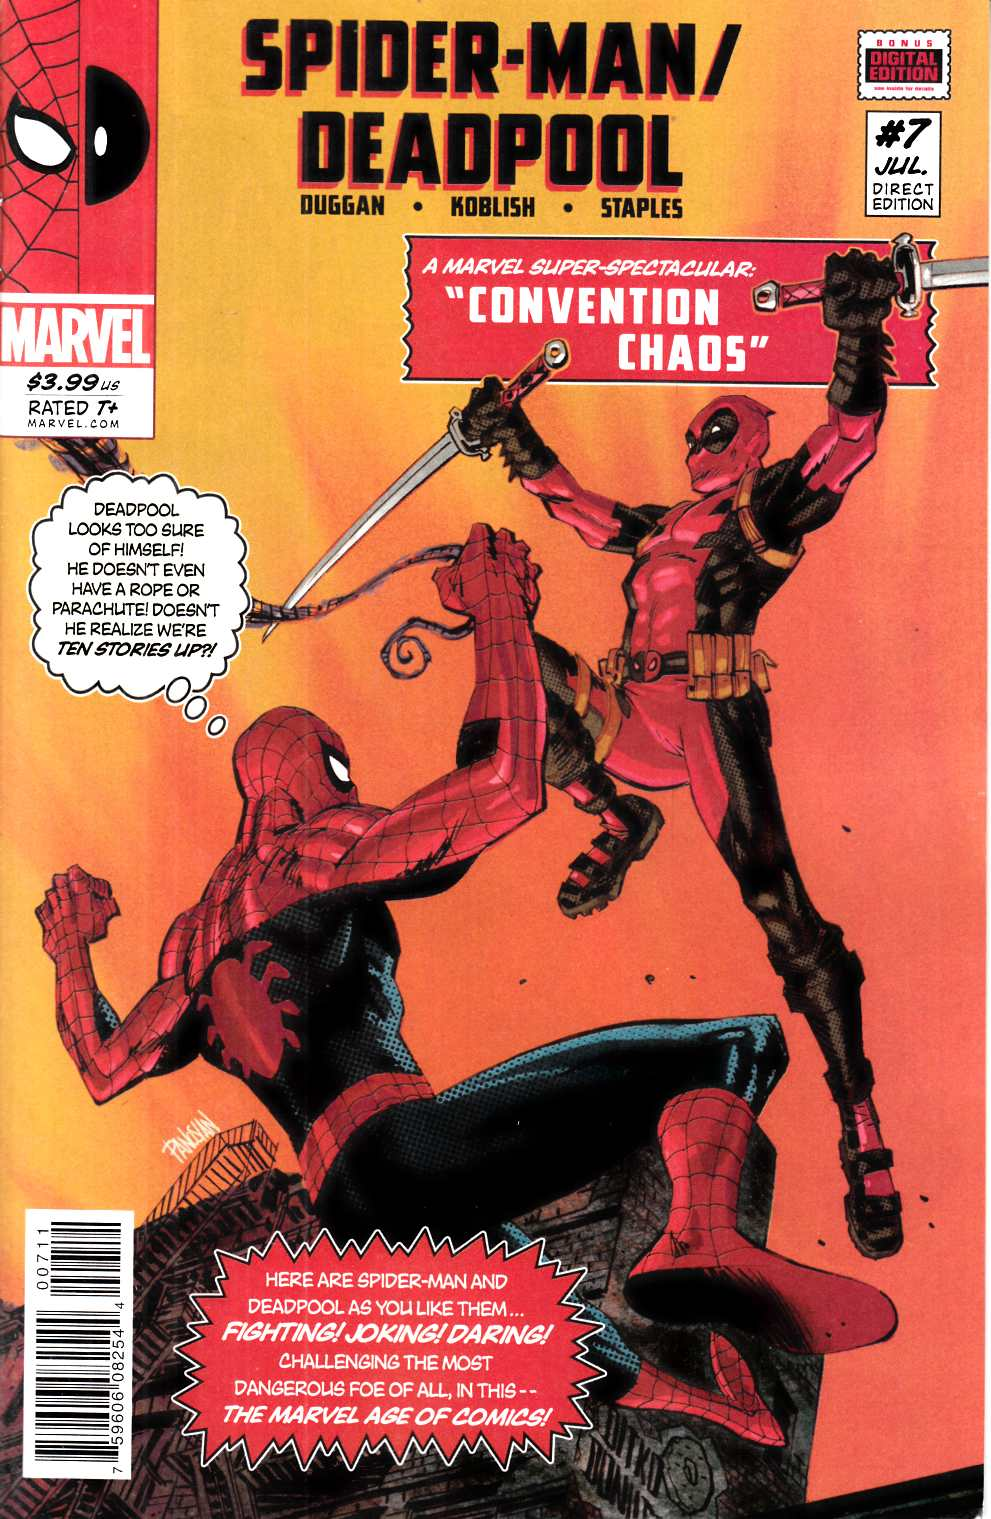 Spider-Man Deadpool #7 [Marvel Comic] THUMBNAIL